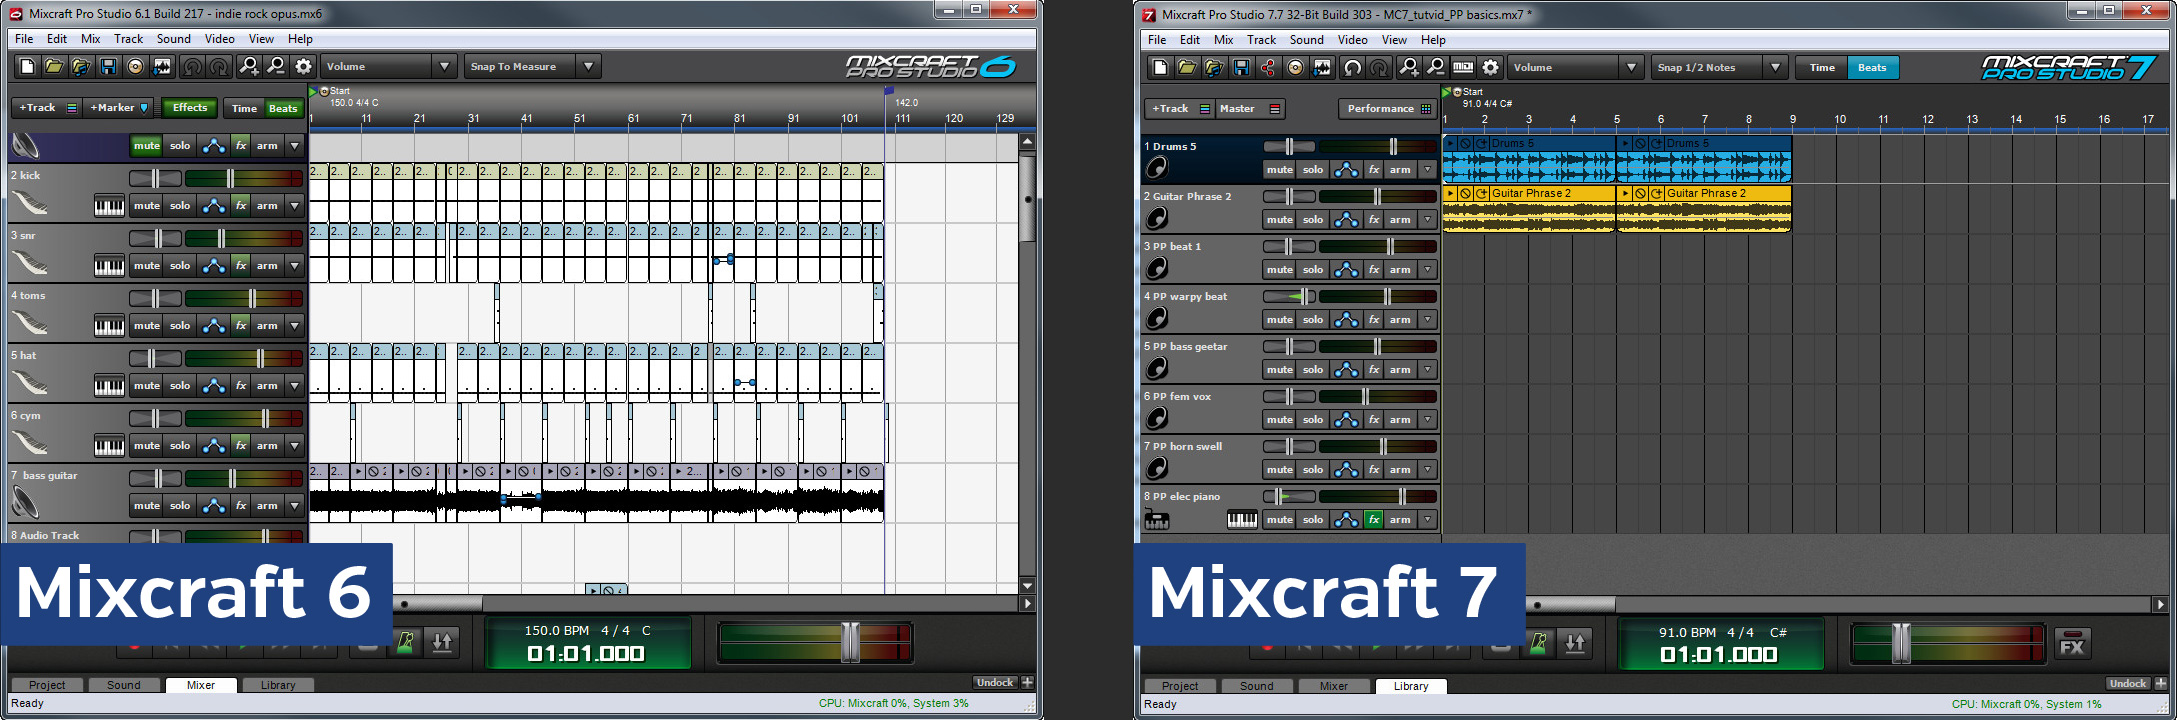 Upgrading from Mixcraft 6 to Mixcraft 7 - Acoustica Blog | Mixcraft